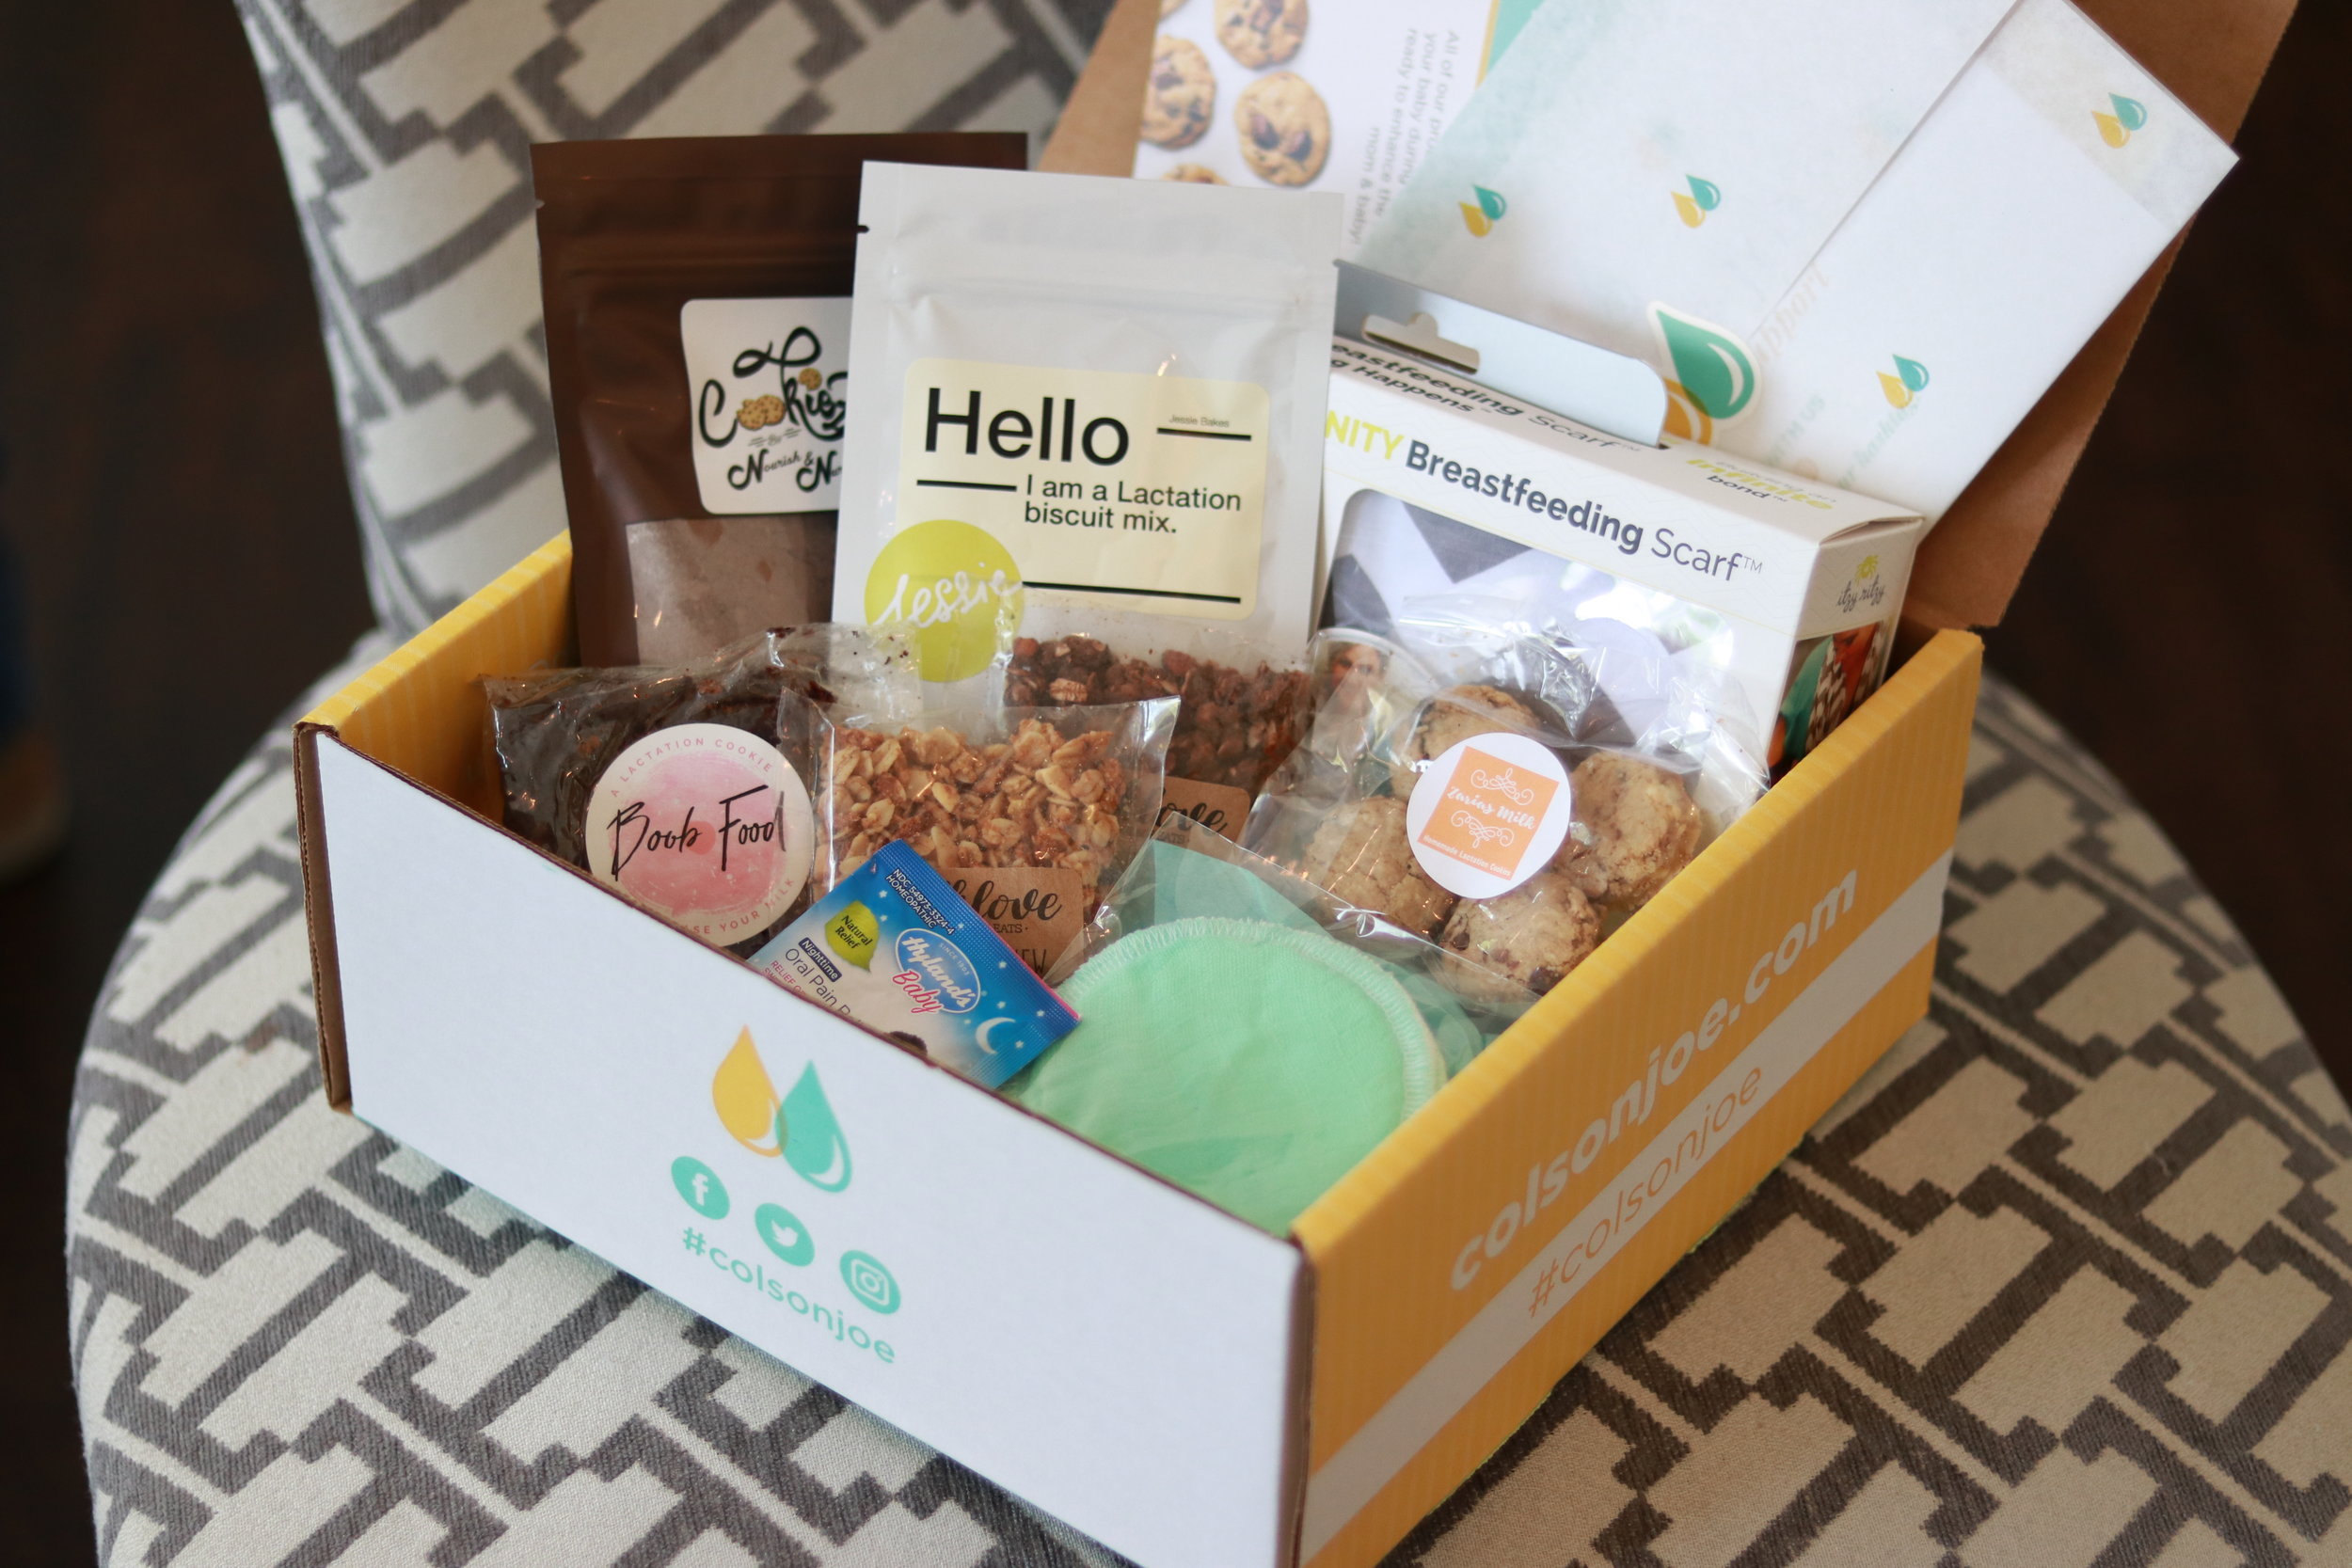 - This week's episode is sponsored by Colson & Joe, a monthly breastfeeding subscription box!